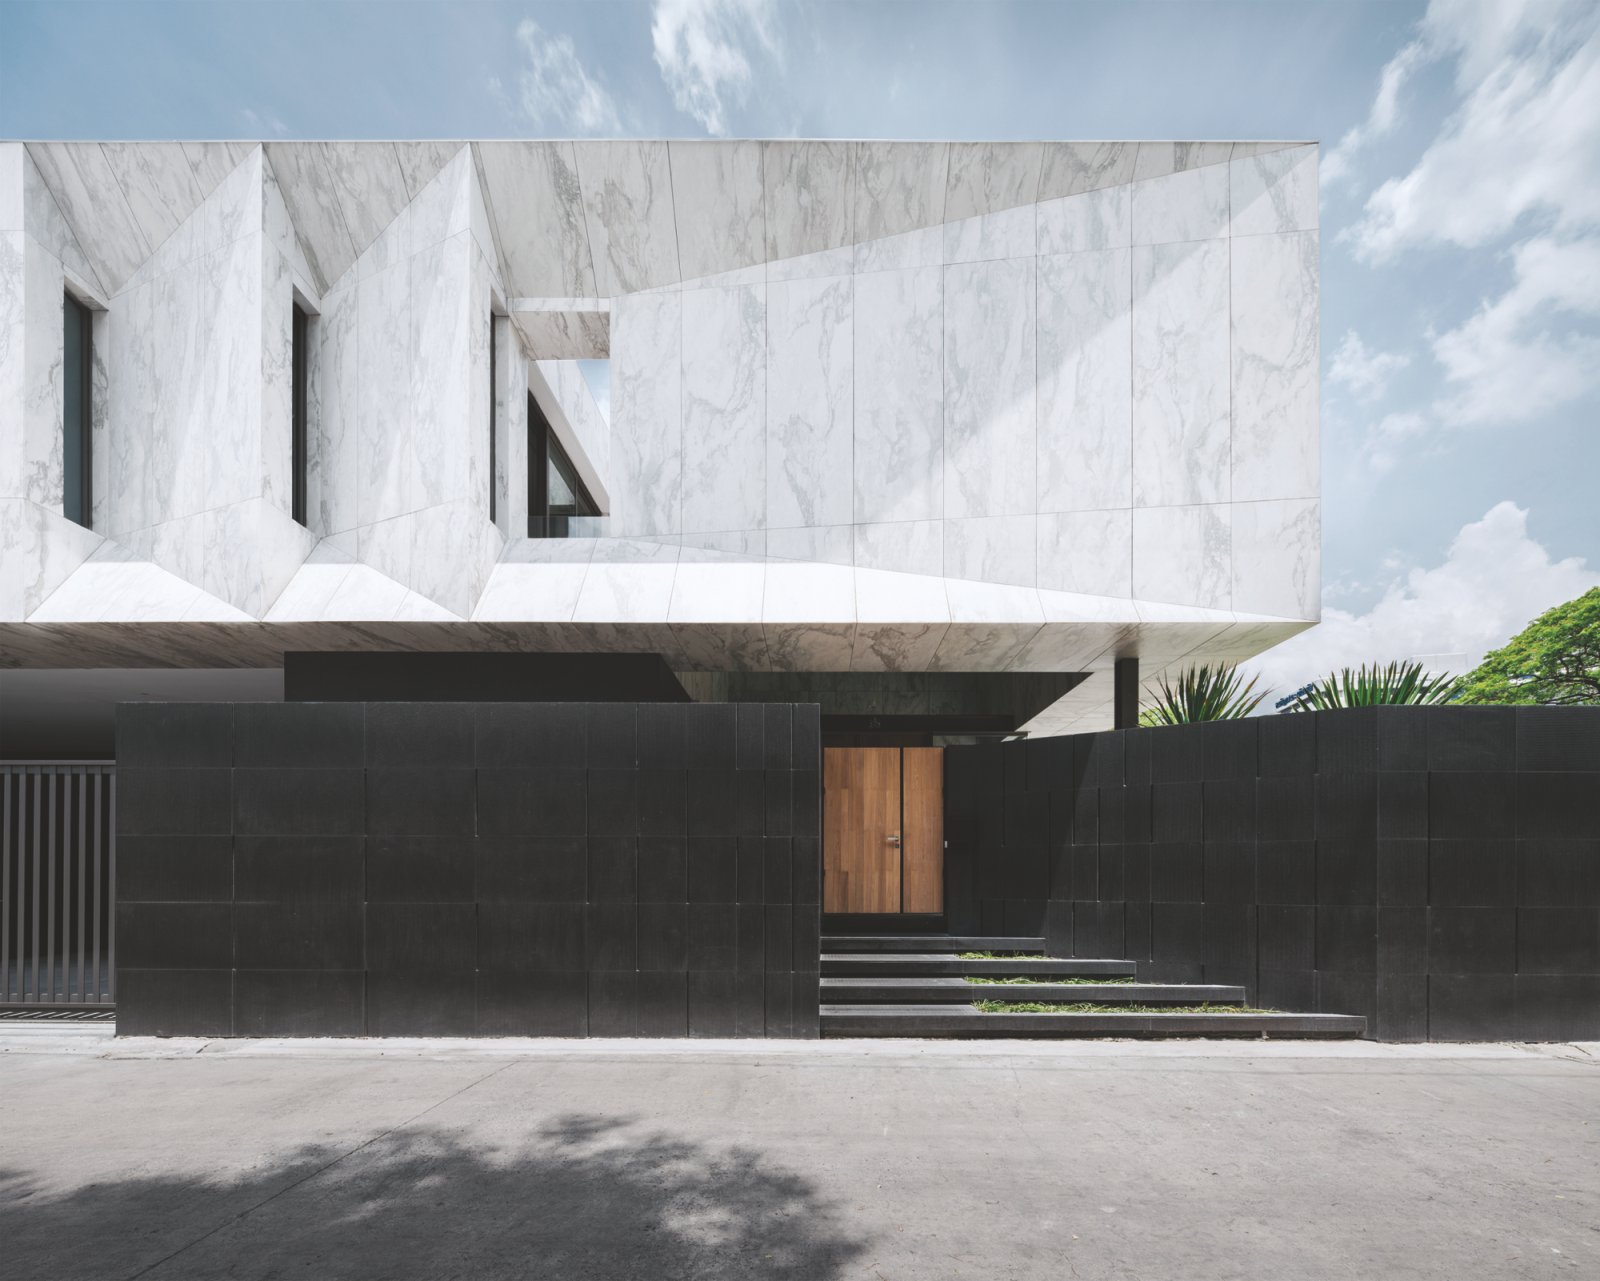 marble-house-by-openbox-architects-05